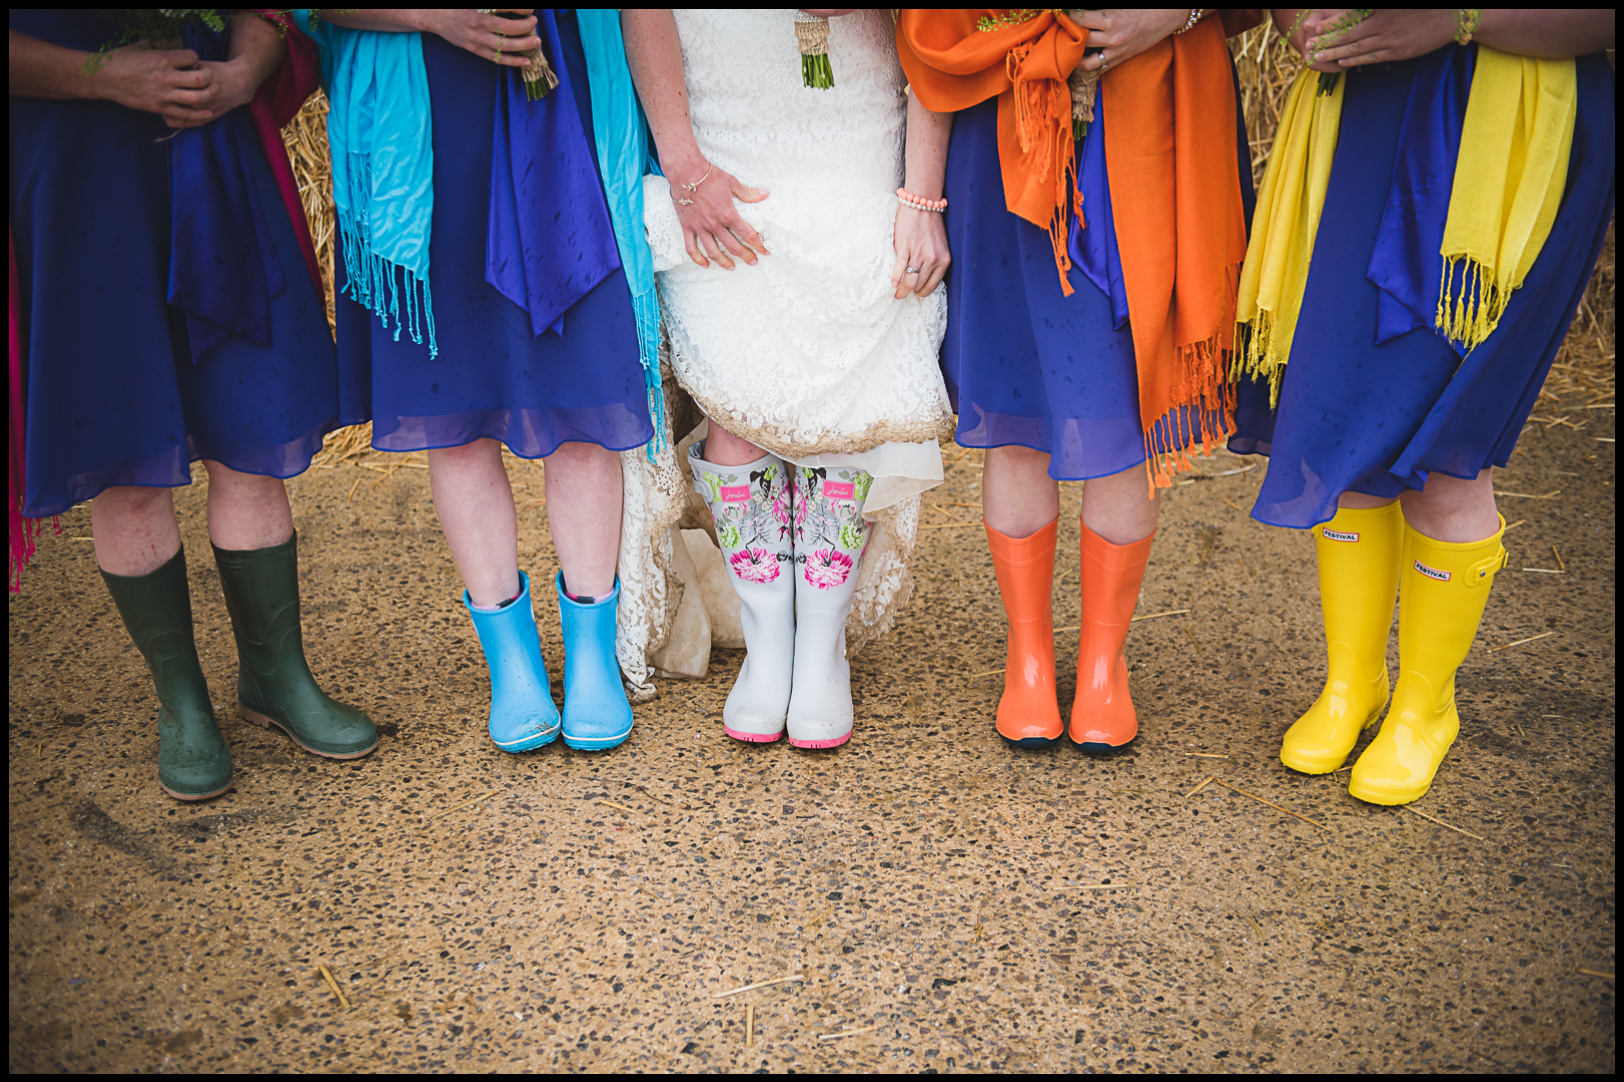 wet-wedding-ideas-uk.jpg